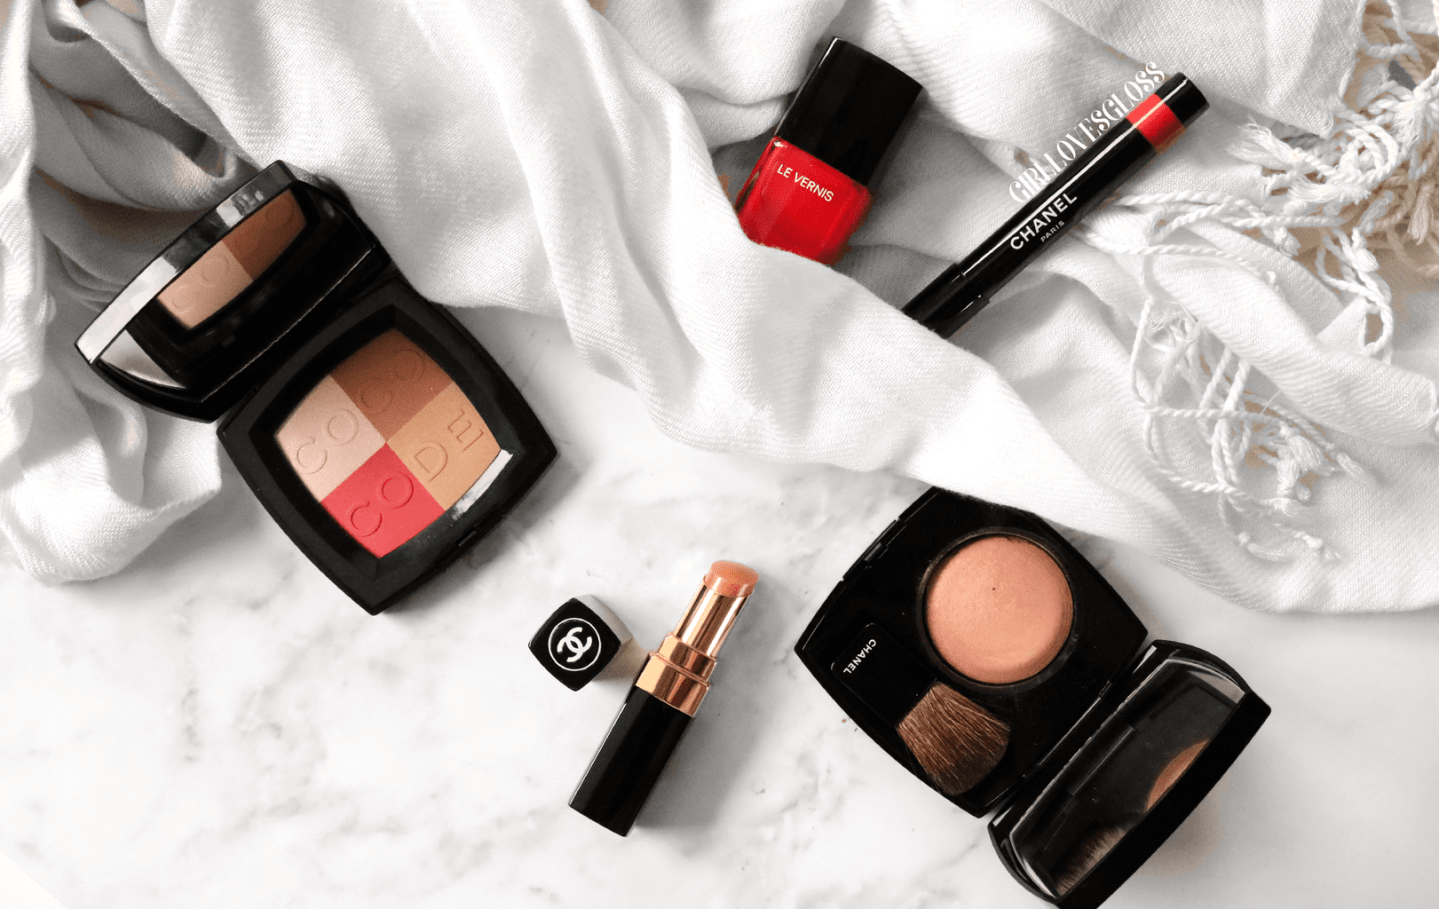 Chanel Coco Codes Collection Review and Swatches